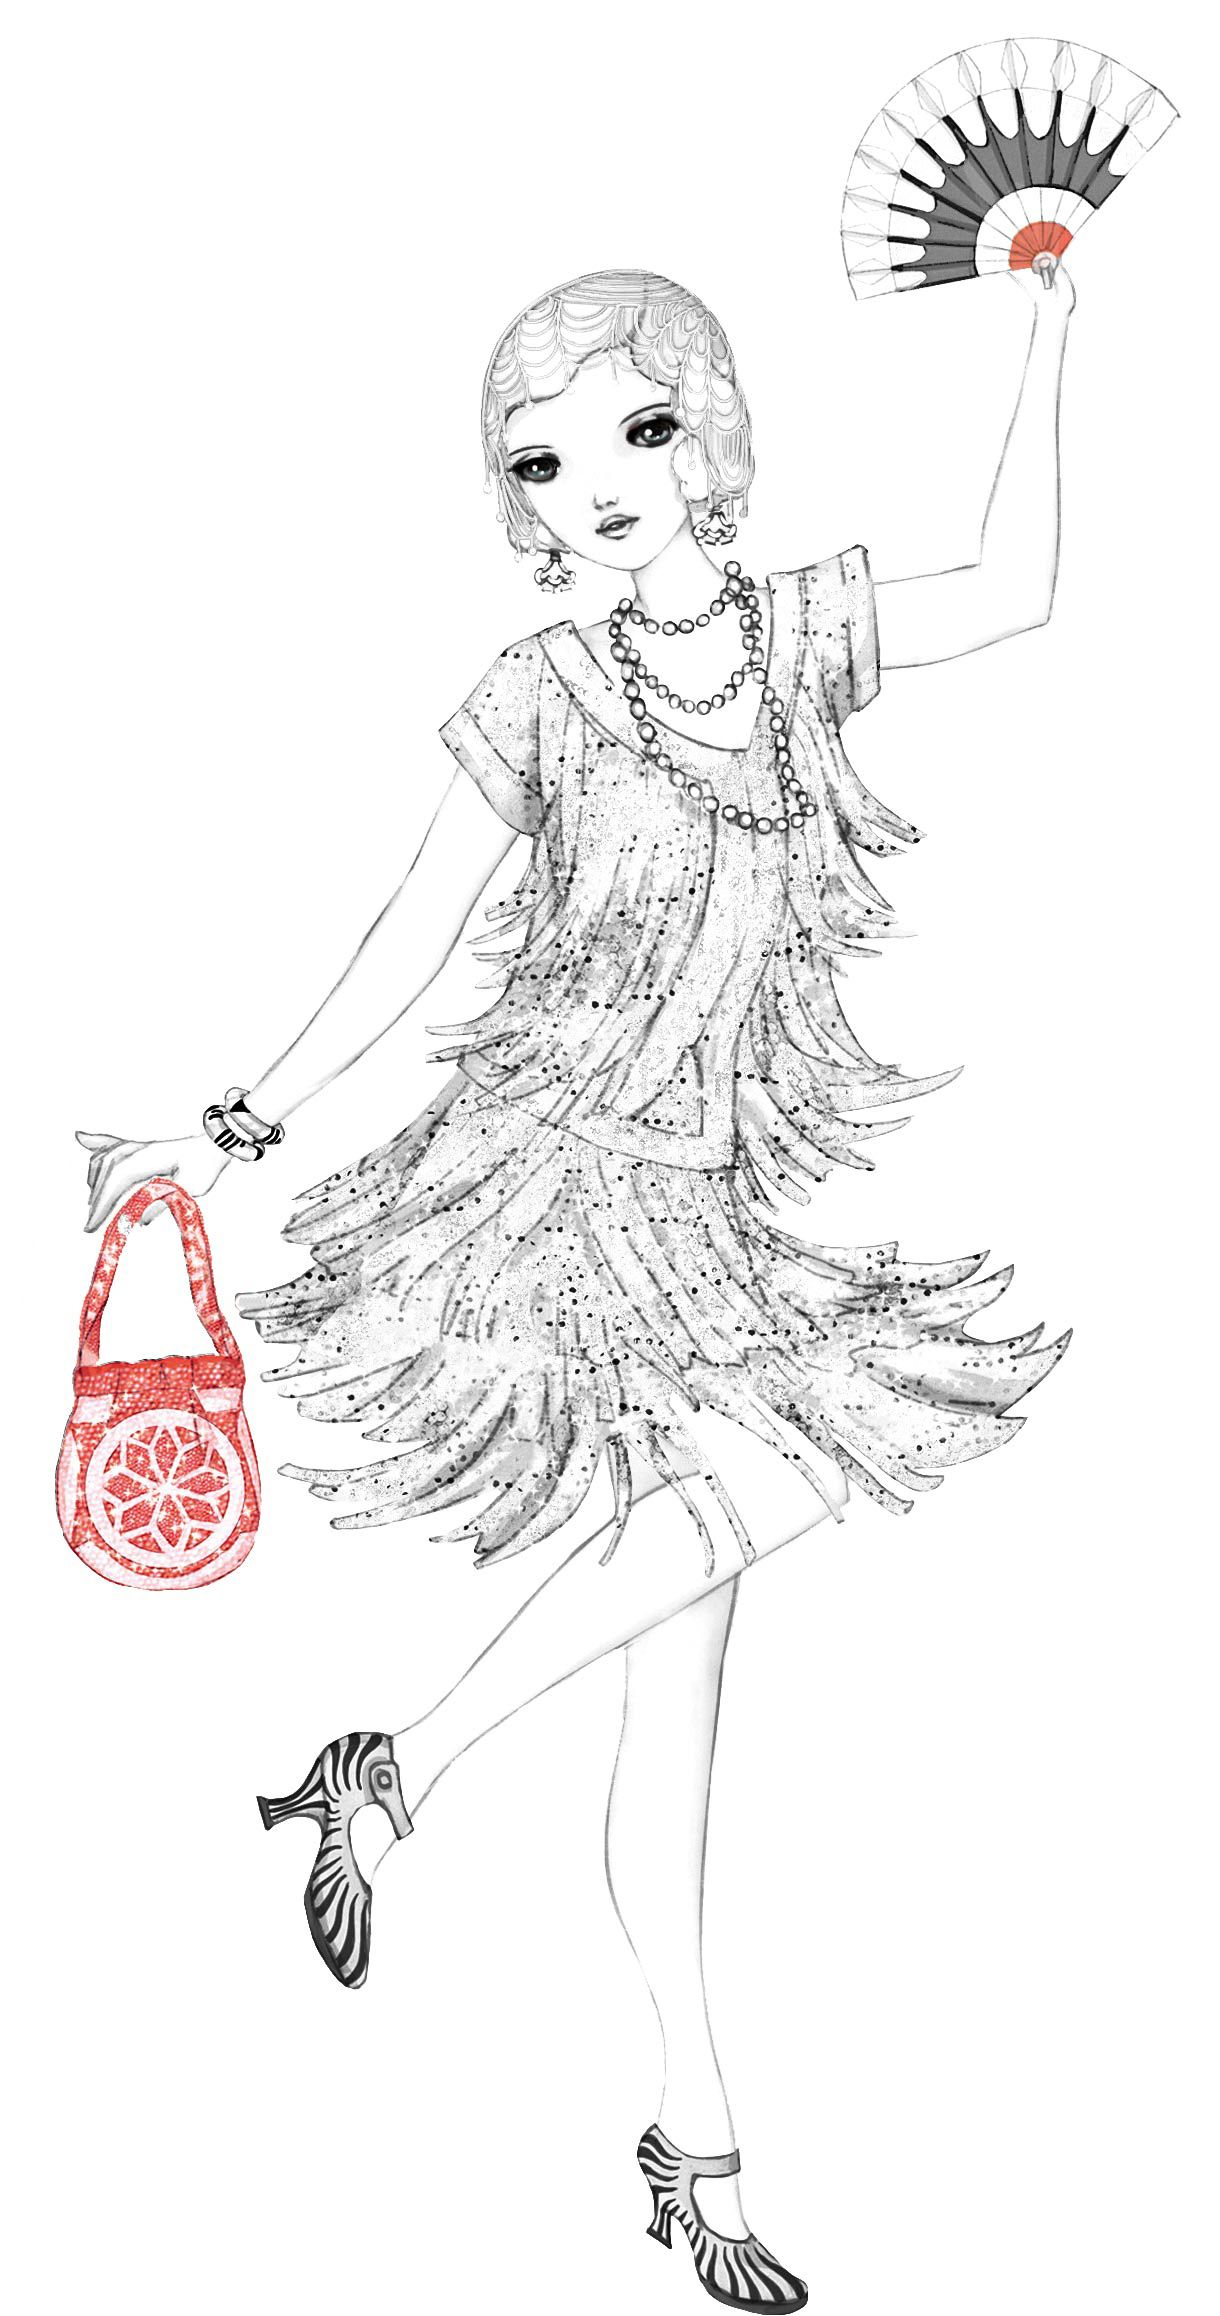 From Usborne Download A Colouring Sheet From 1920s Fashion And Complete The Fun Flapper Dress Ready For An Evening At A Jazz Club Mode